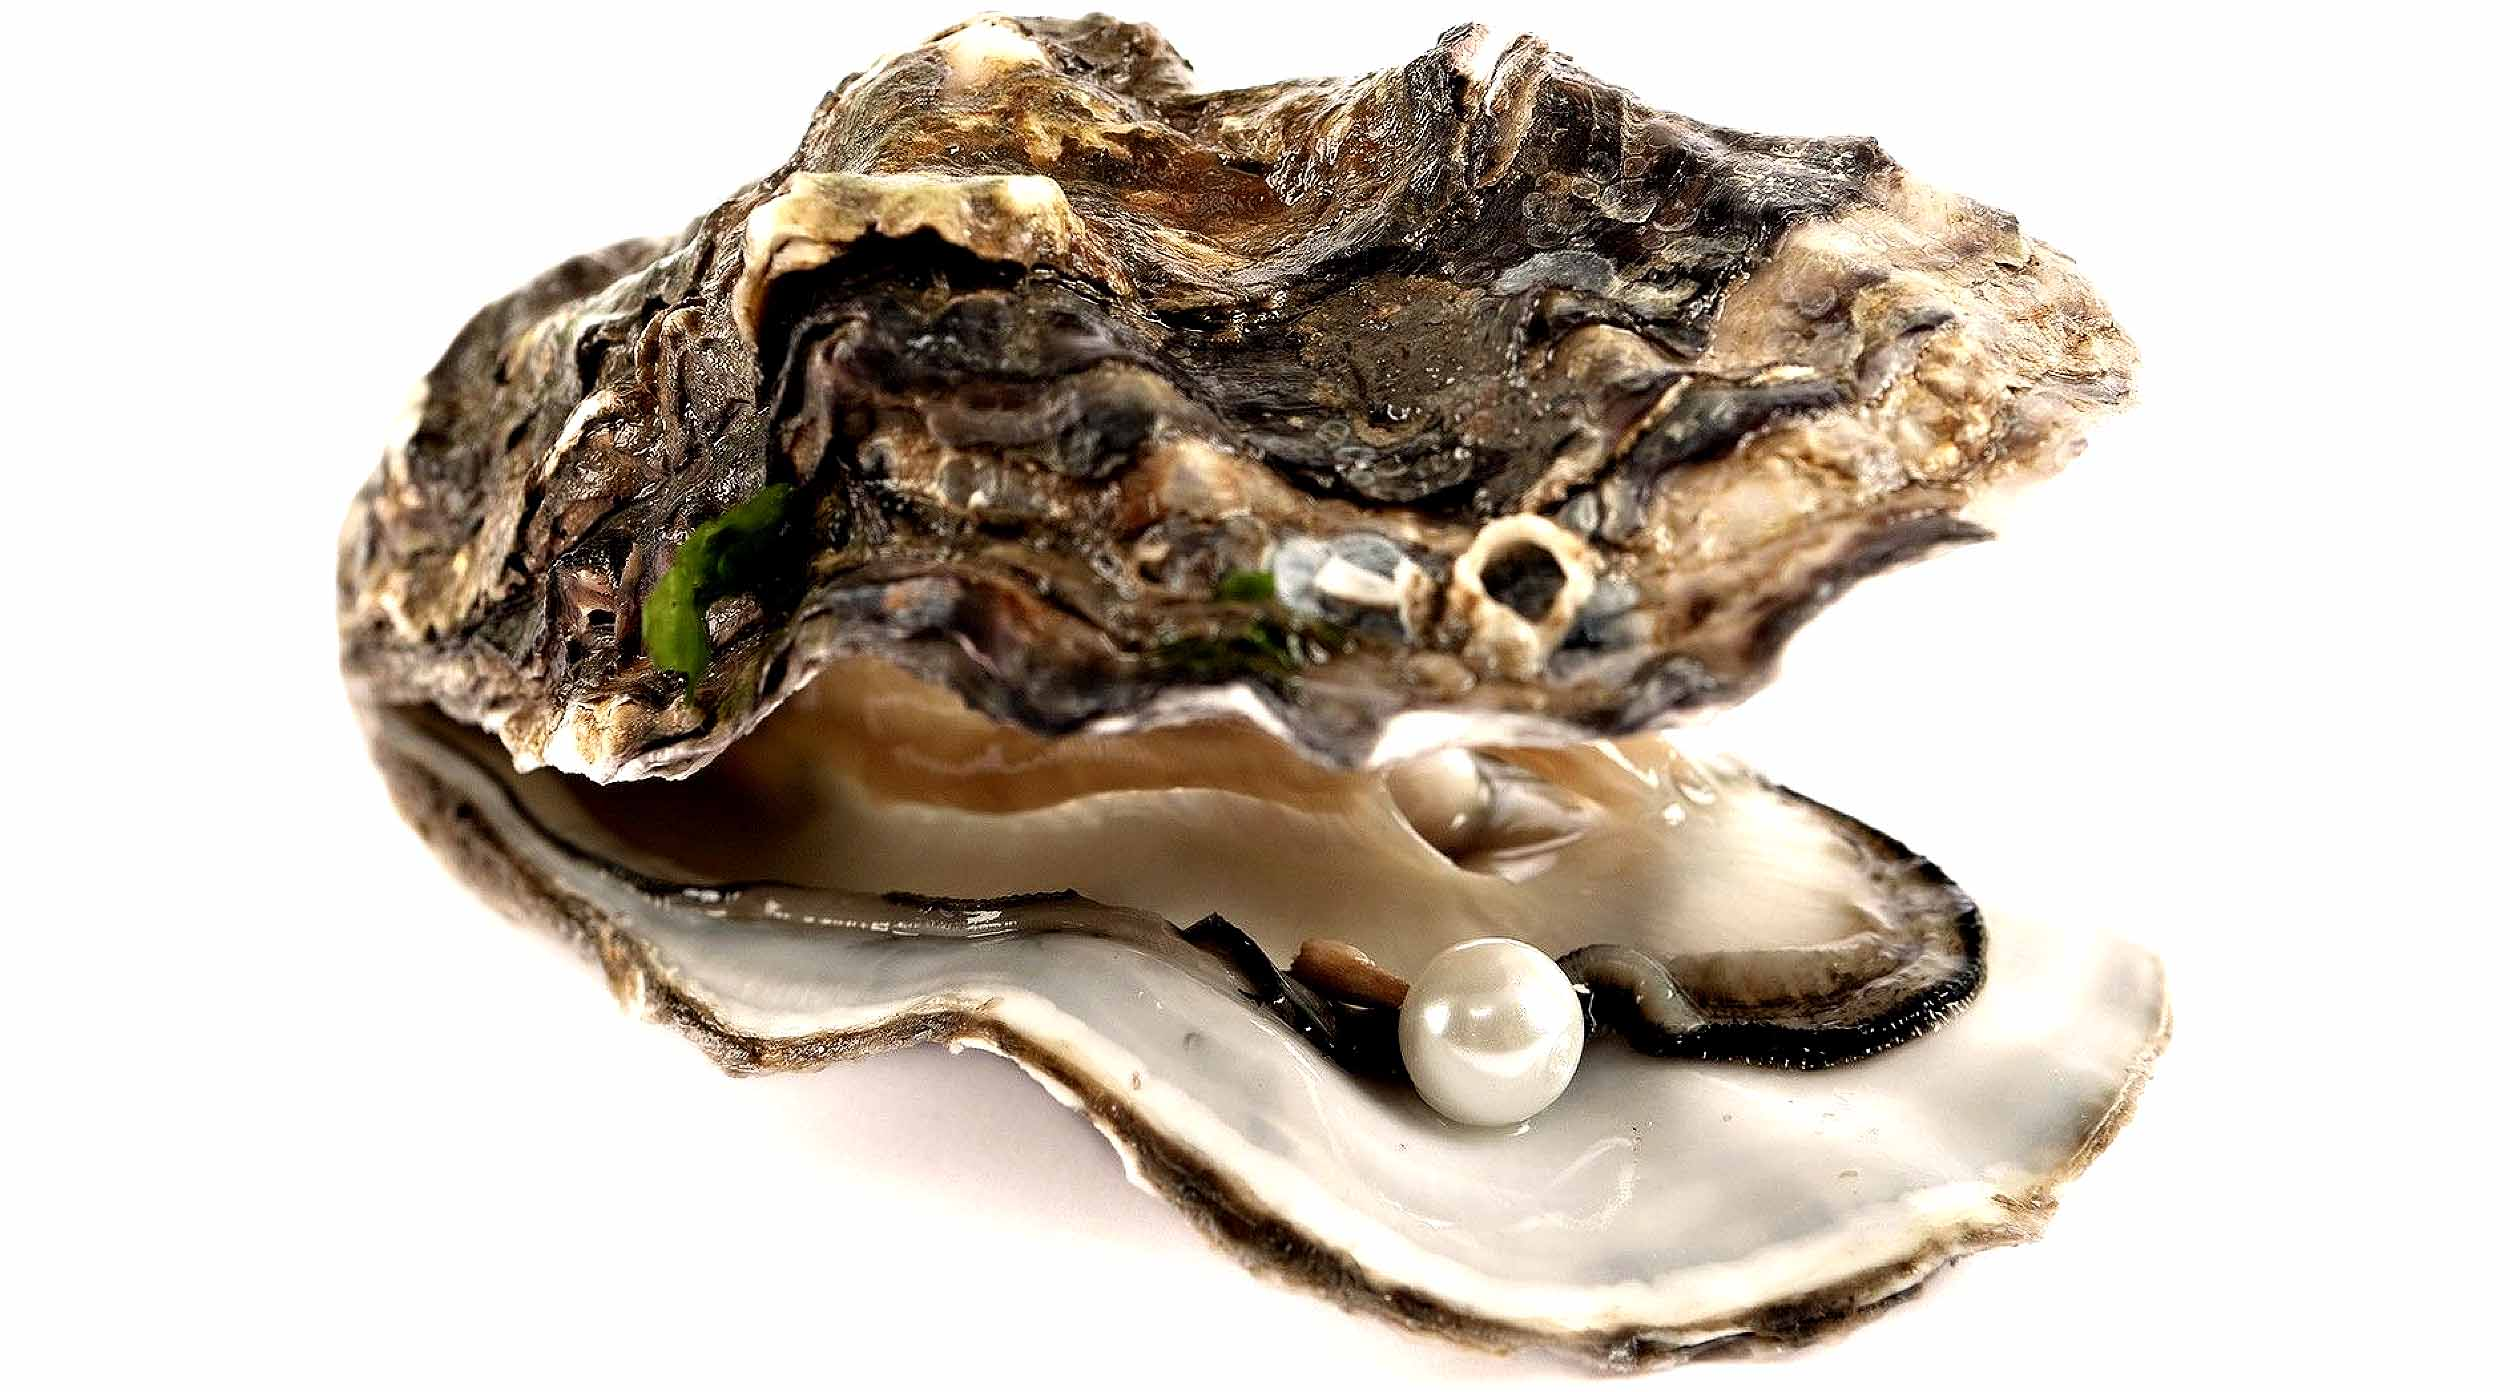 GET YOUR OYSTER ON BABY!